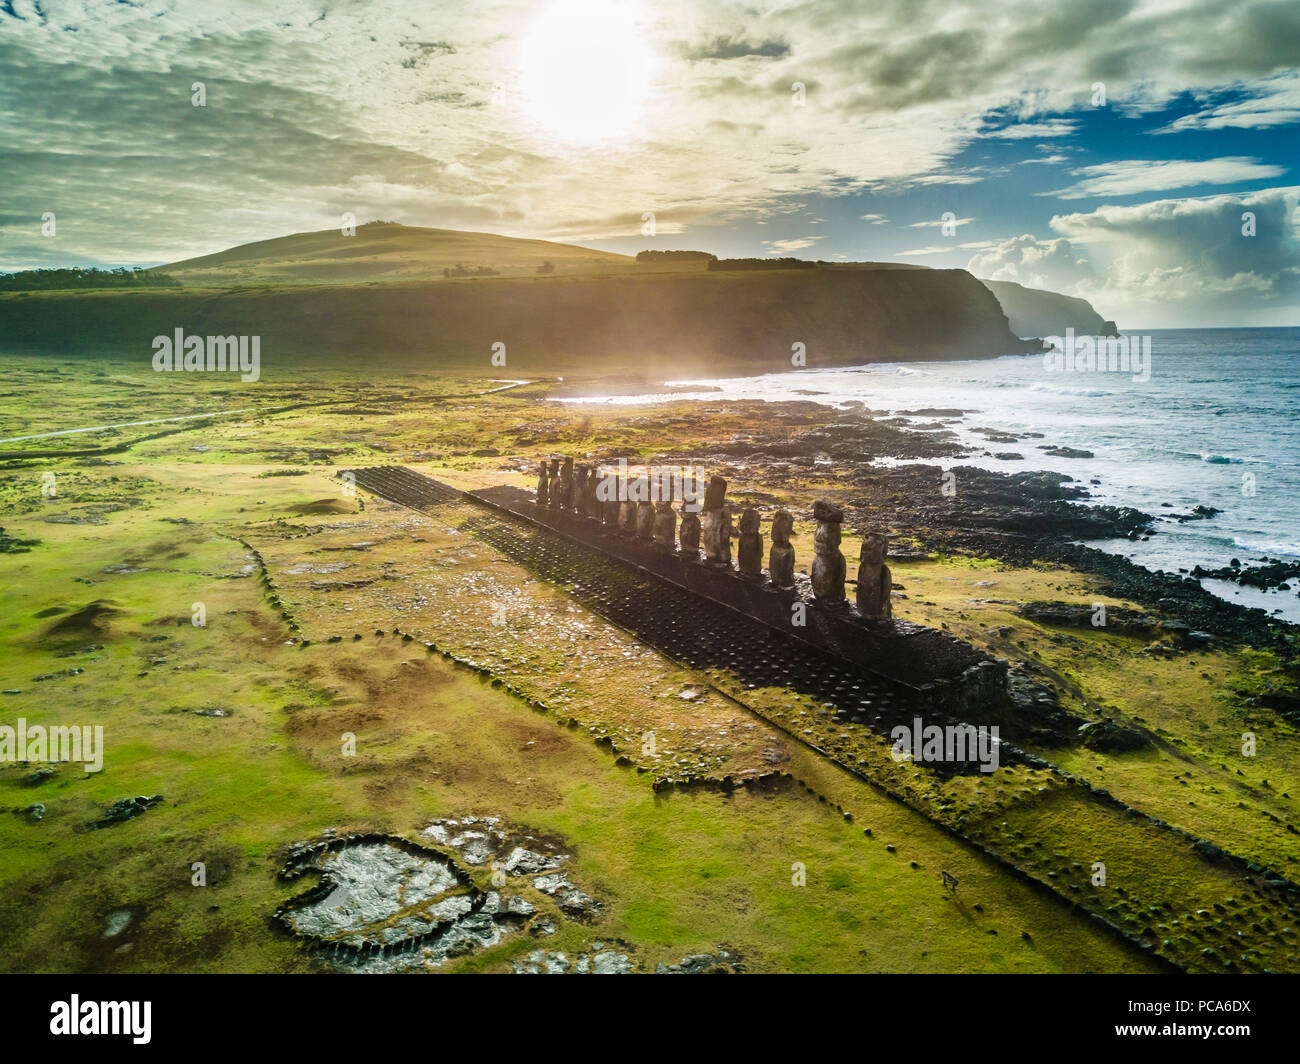 An aerial view over Ahu Tongariki, the most amazing Ahu platform on Easter Island. 15 moais still stand up at the south east of the Island. Ahu Tongar - Stock Image